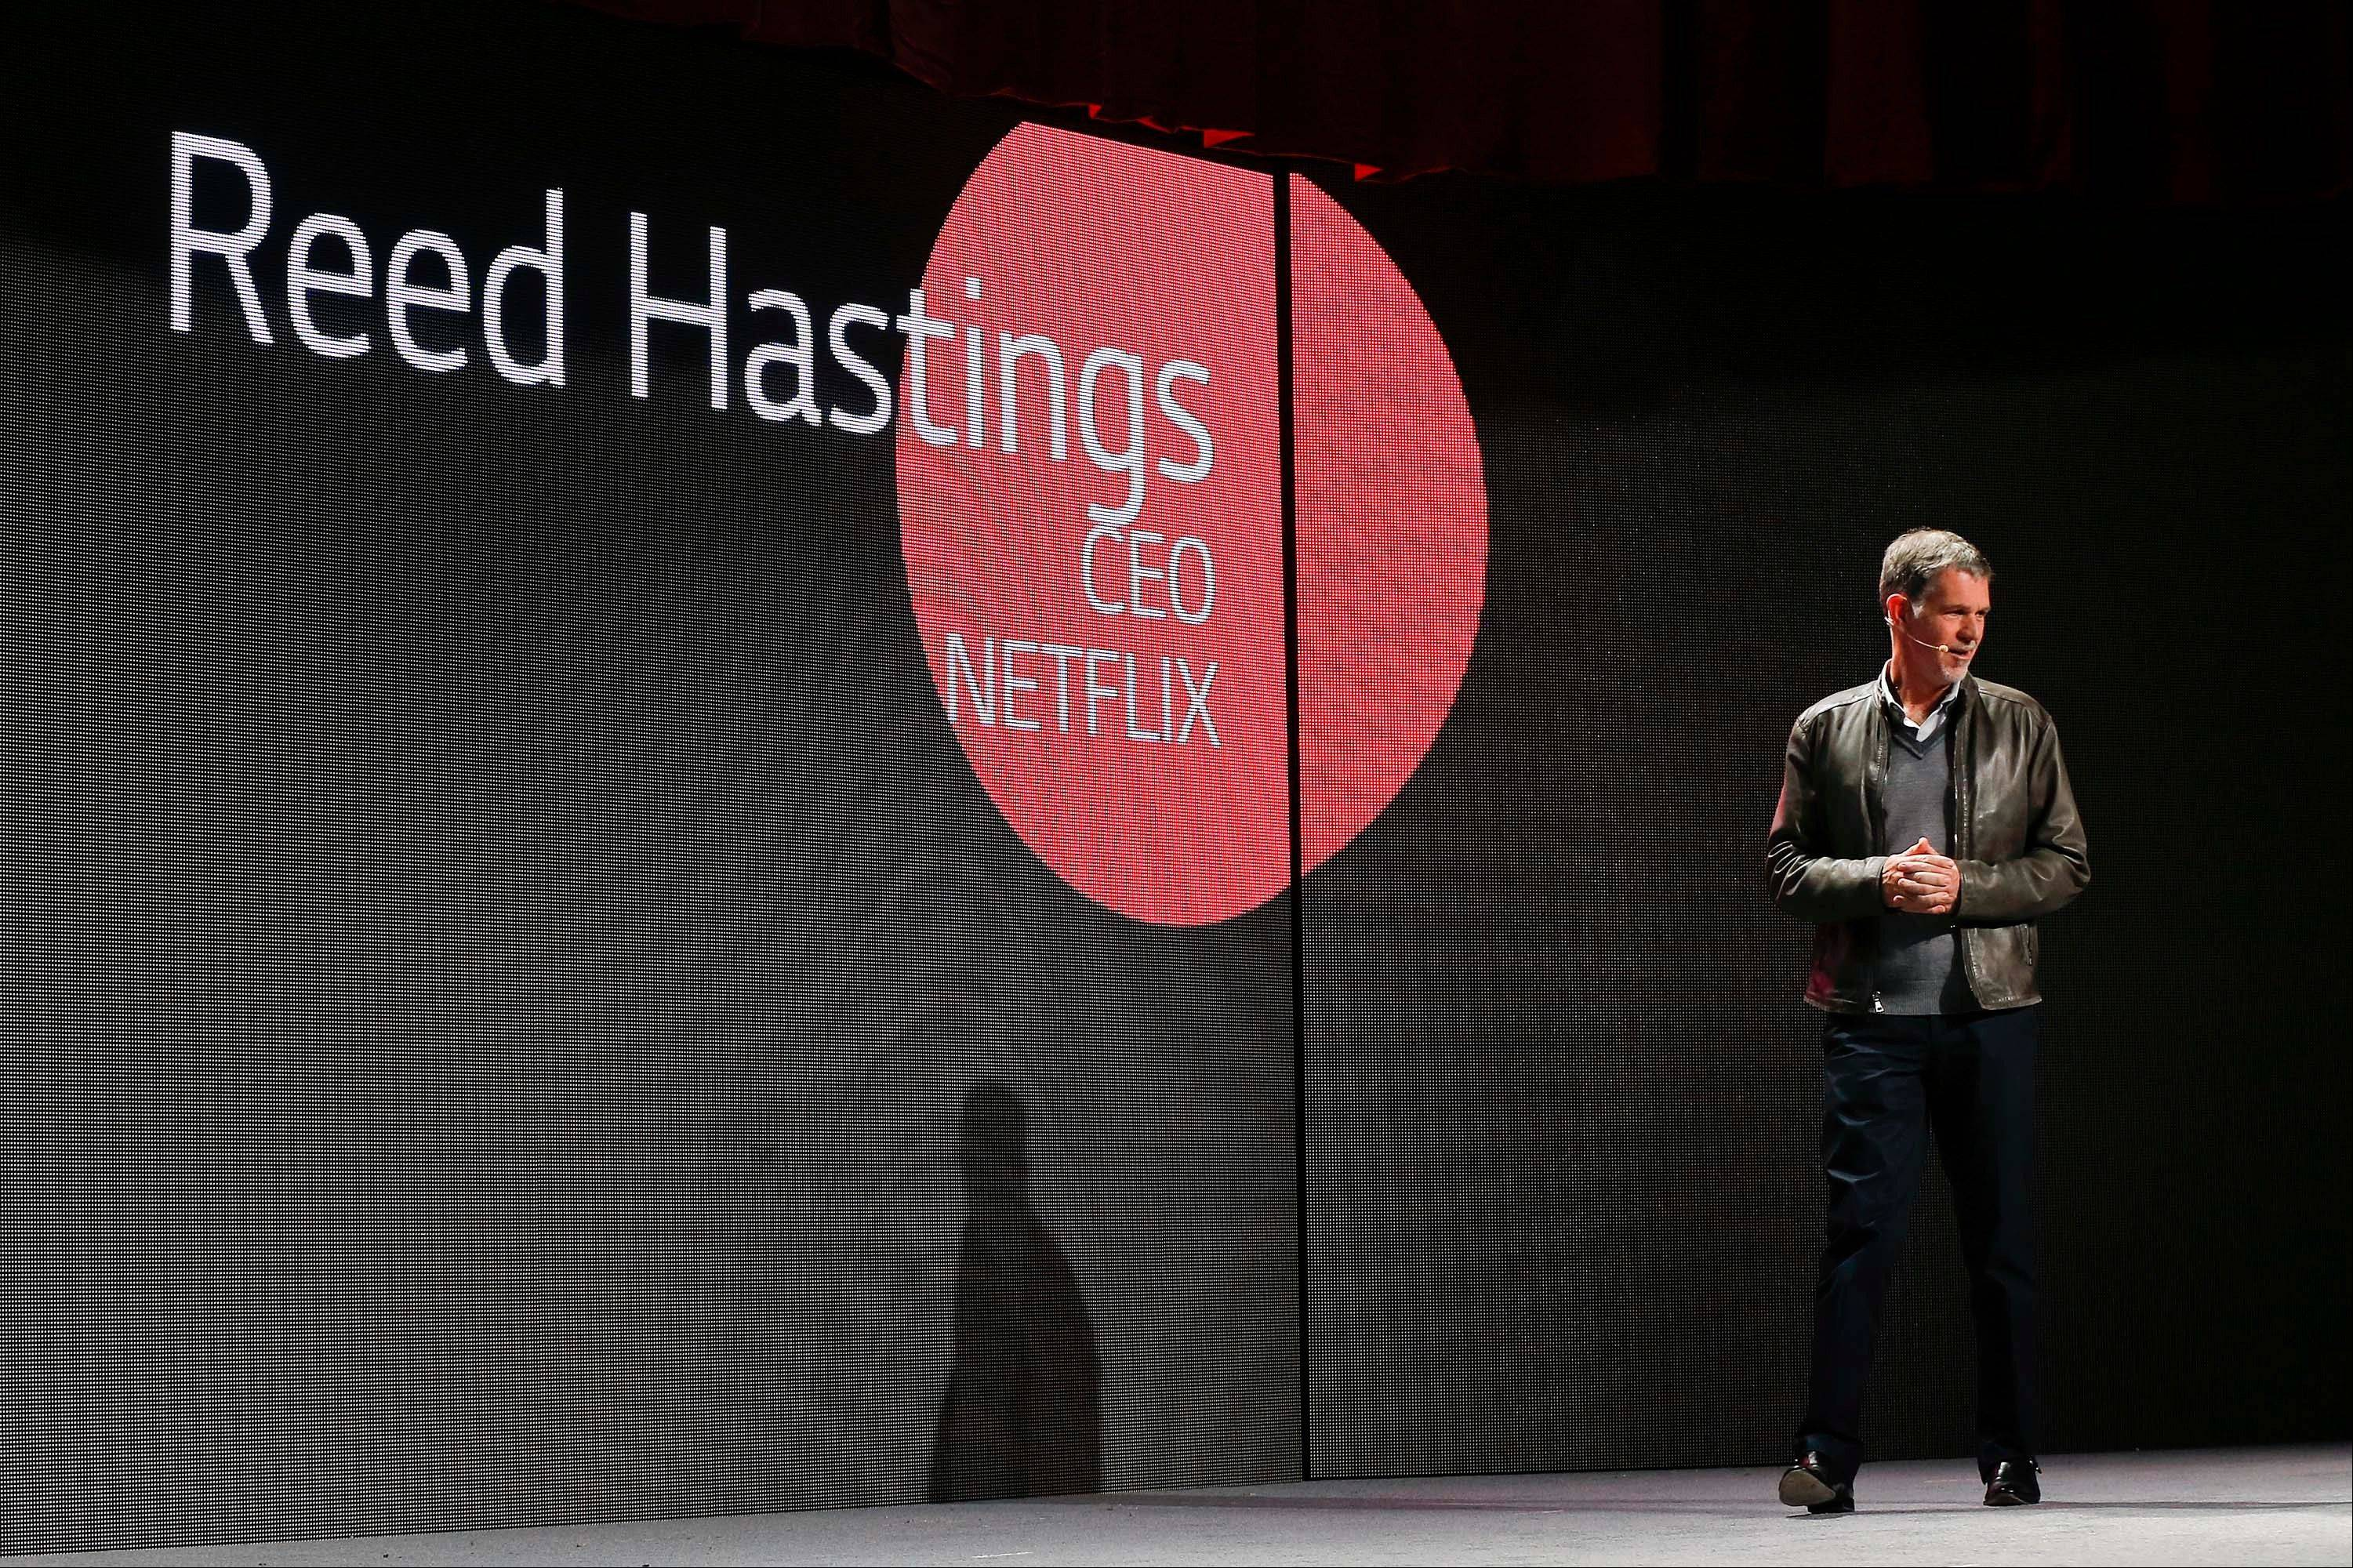 Netflix CEO Reed Hastings talks about his company�s collaboration with LG televisions during the 2014 Consumer Electronics Show in Las Vegas. LG television owners can access Netflix movies directly through a Netflix app on their screen.